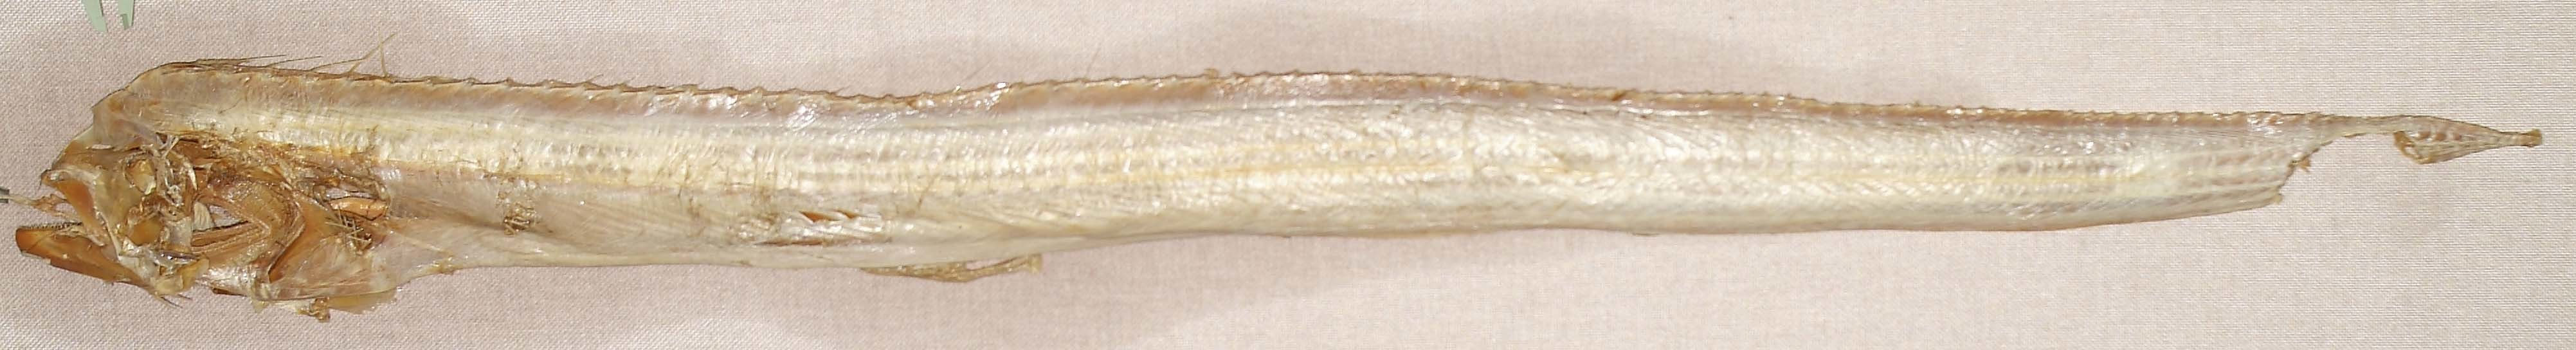 Image of Channel Scabbardfish